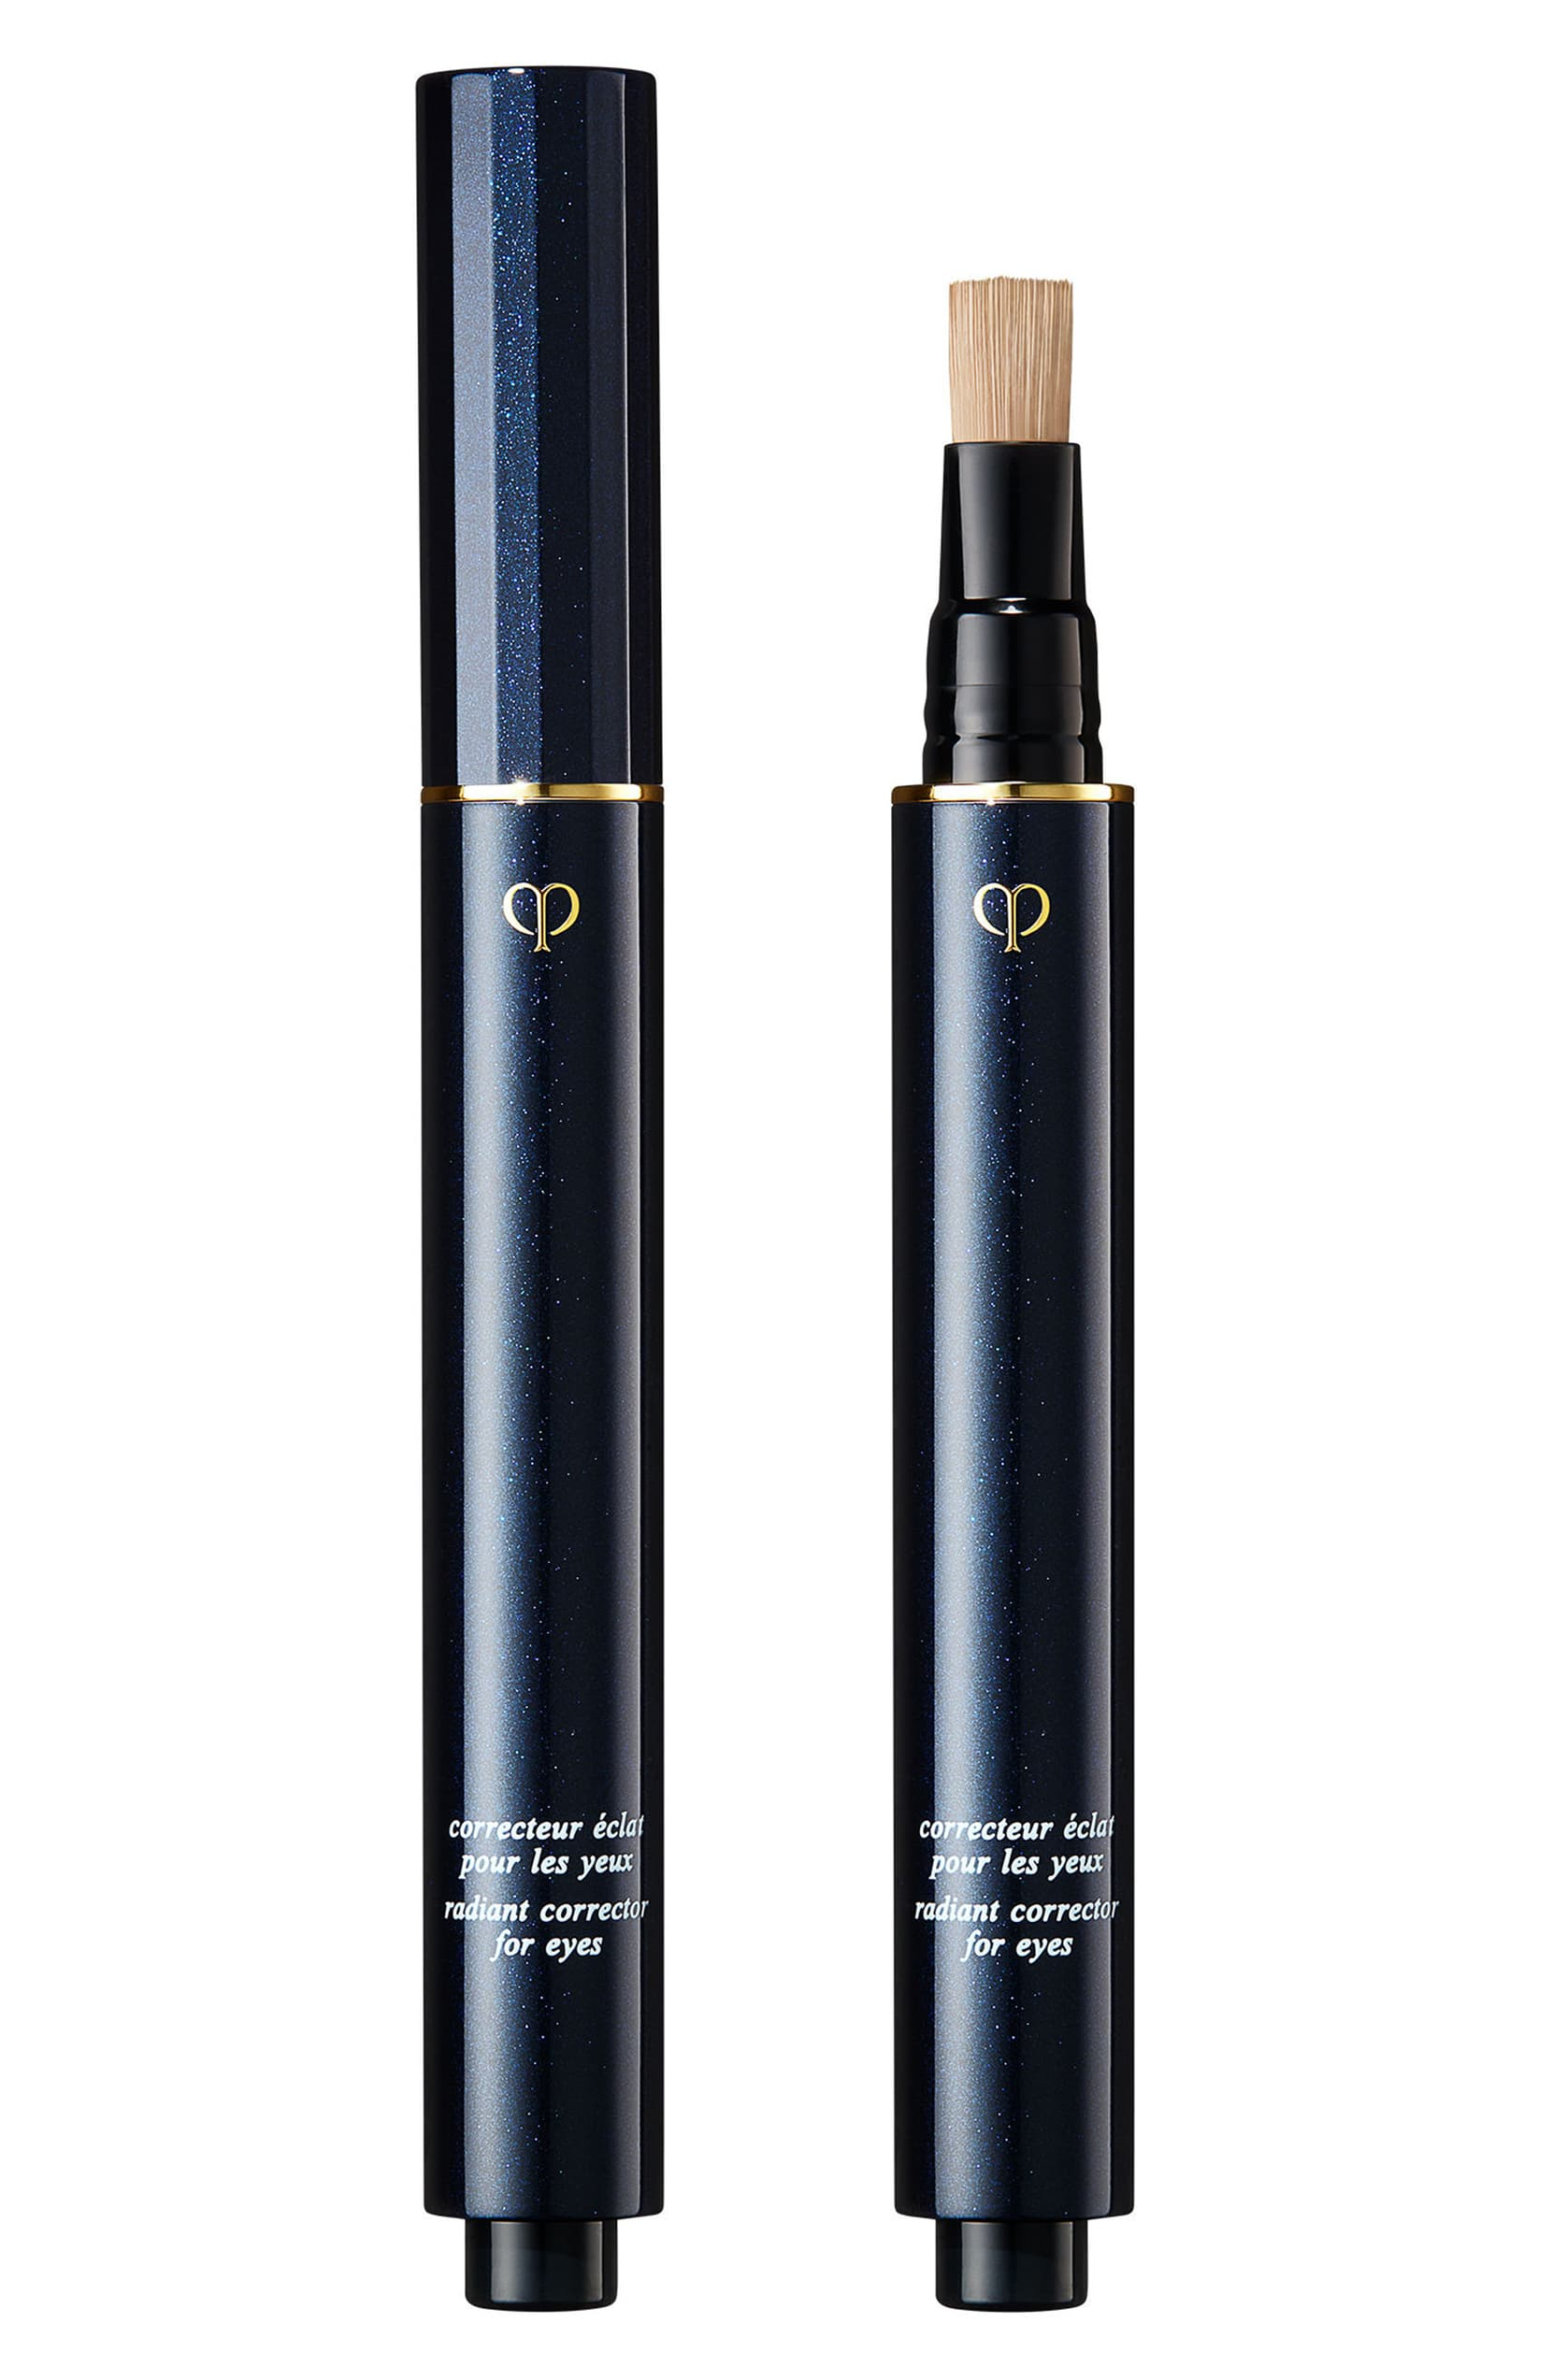 cle-de-peau-beaute-radiant-corrector-for-eyes